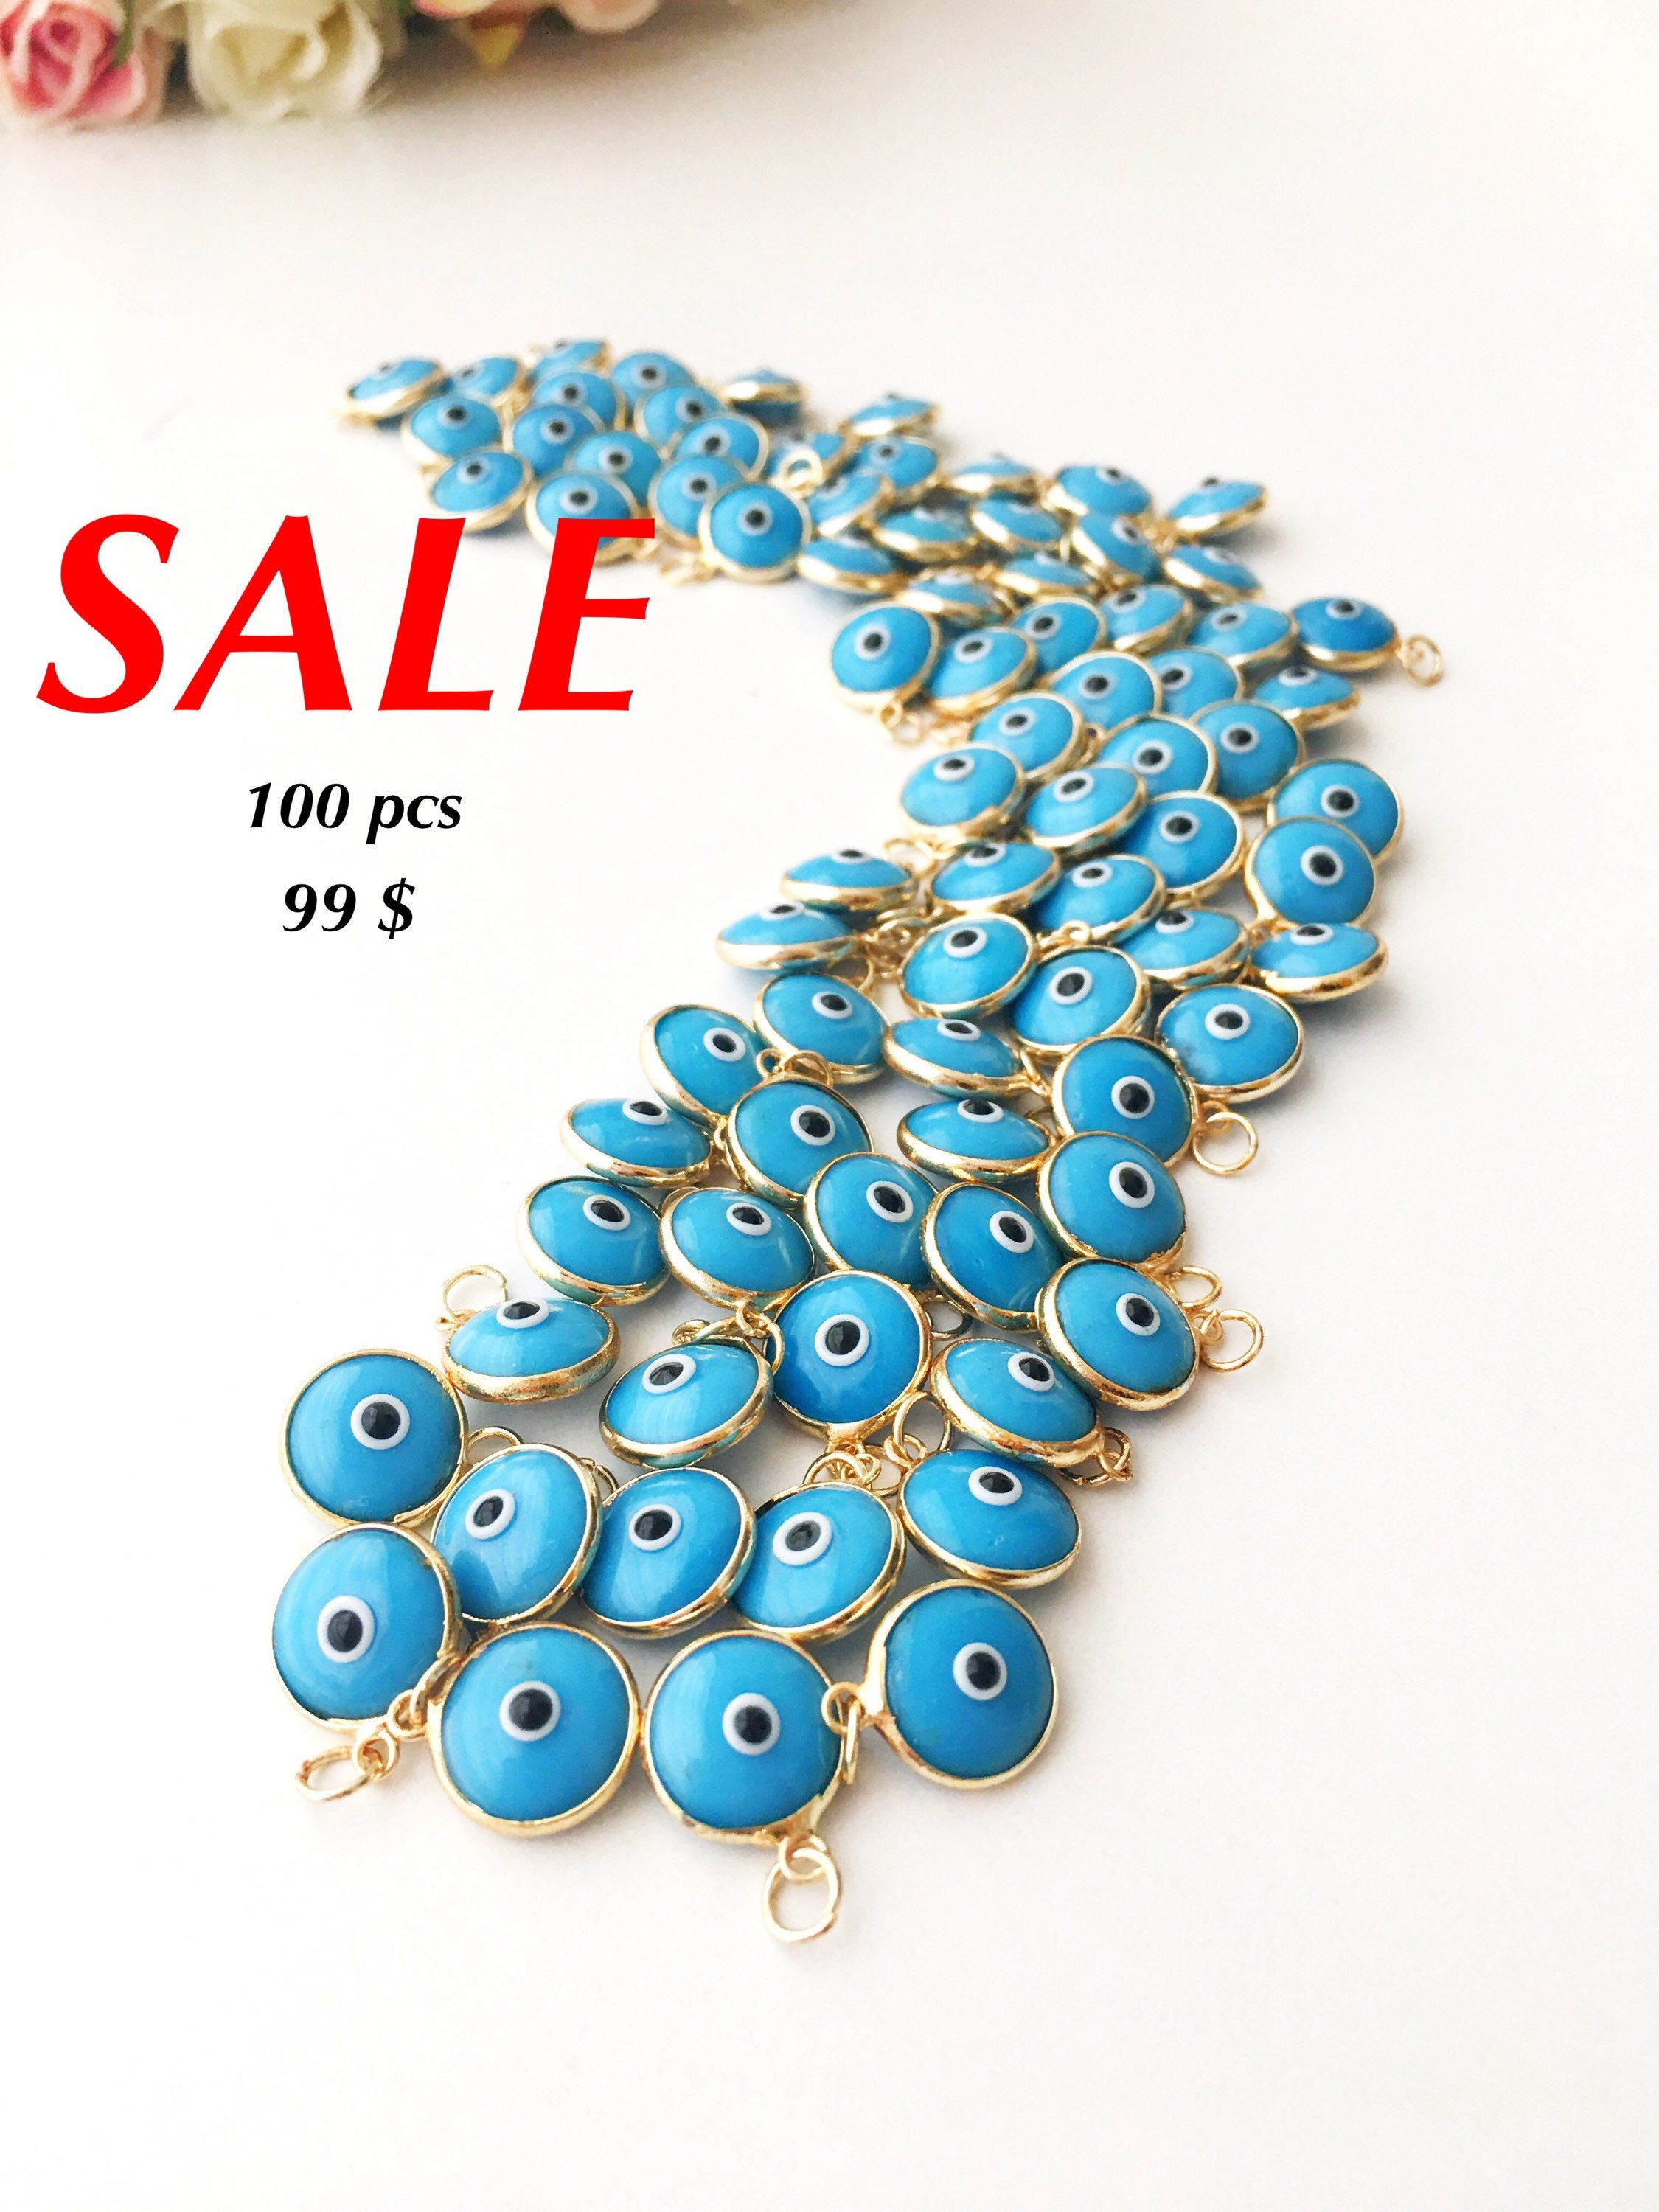 making make troll how to for design unique ideas buy with in bulk jewelry beads unused beginners sale